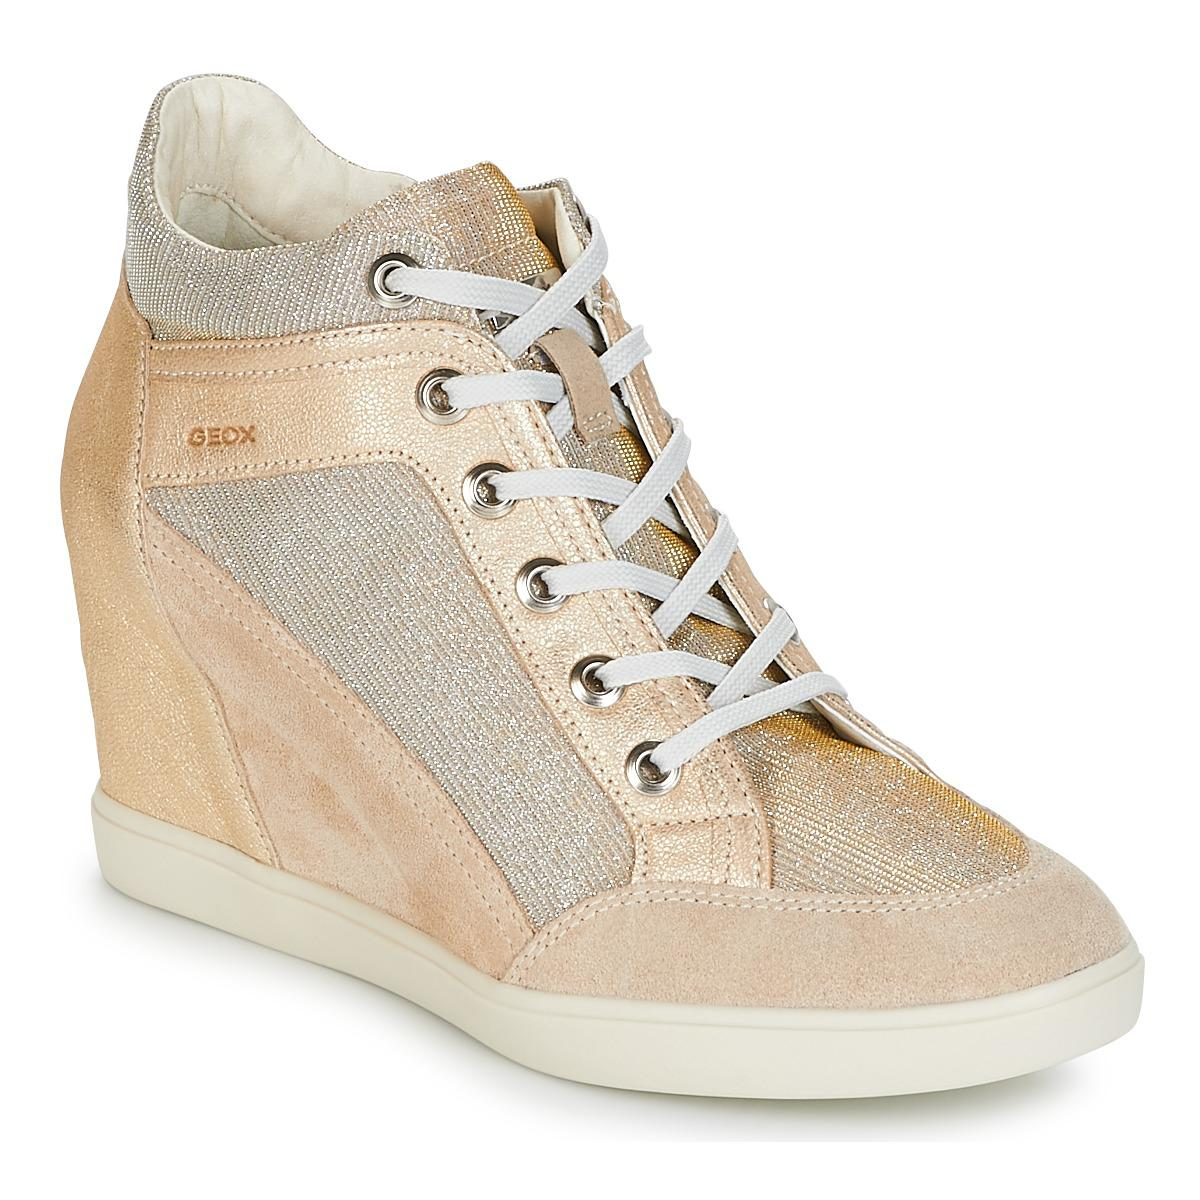 Geometría postre Adicto  Geox D Eleni C Shoes (high-top Trainers) in Gold (Metallic) - Lyst